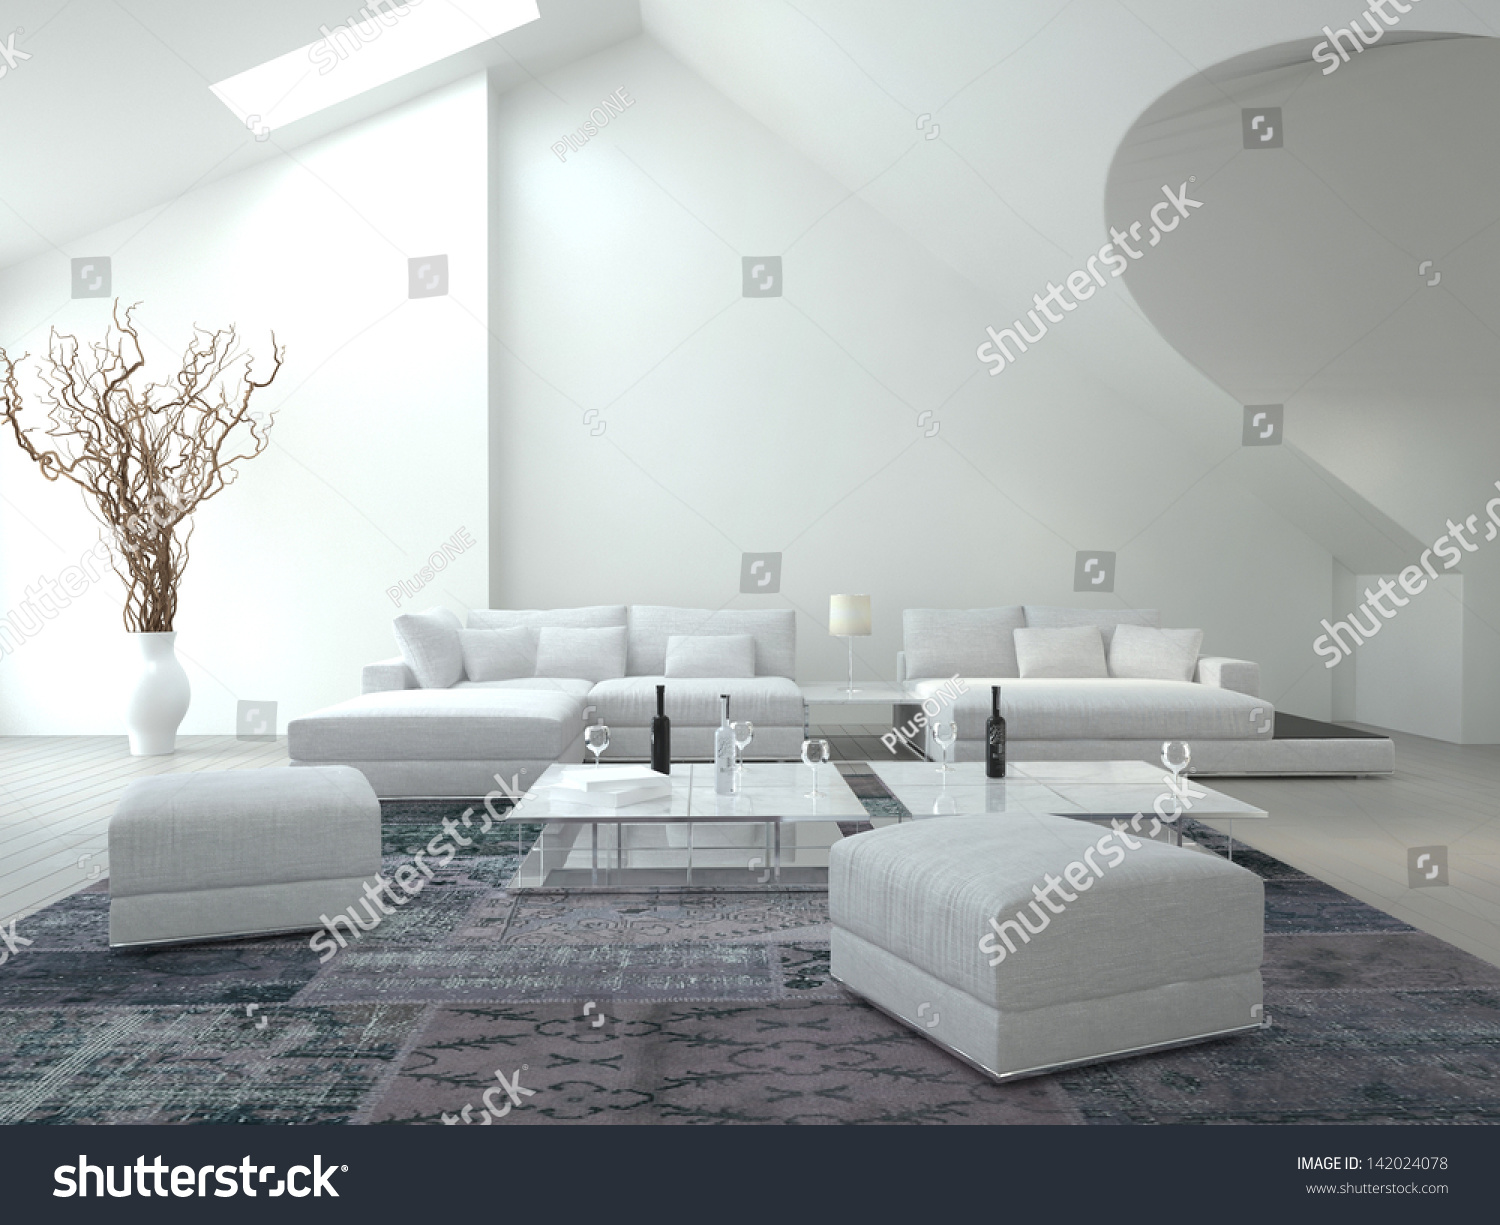 Awesome White Living Room Interior Architecture Stock Photo & Image ...